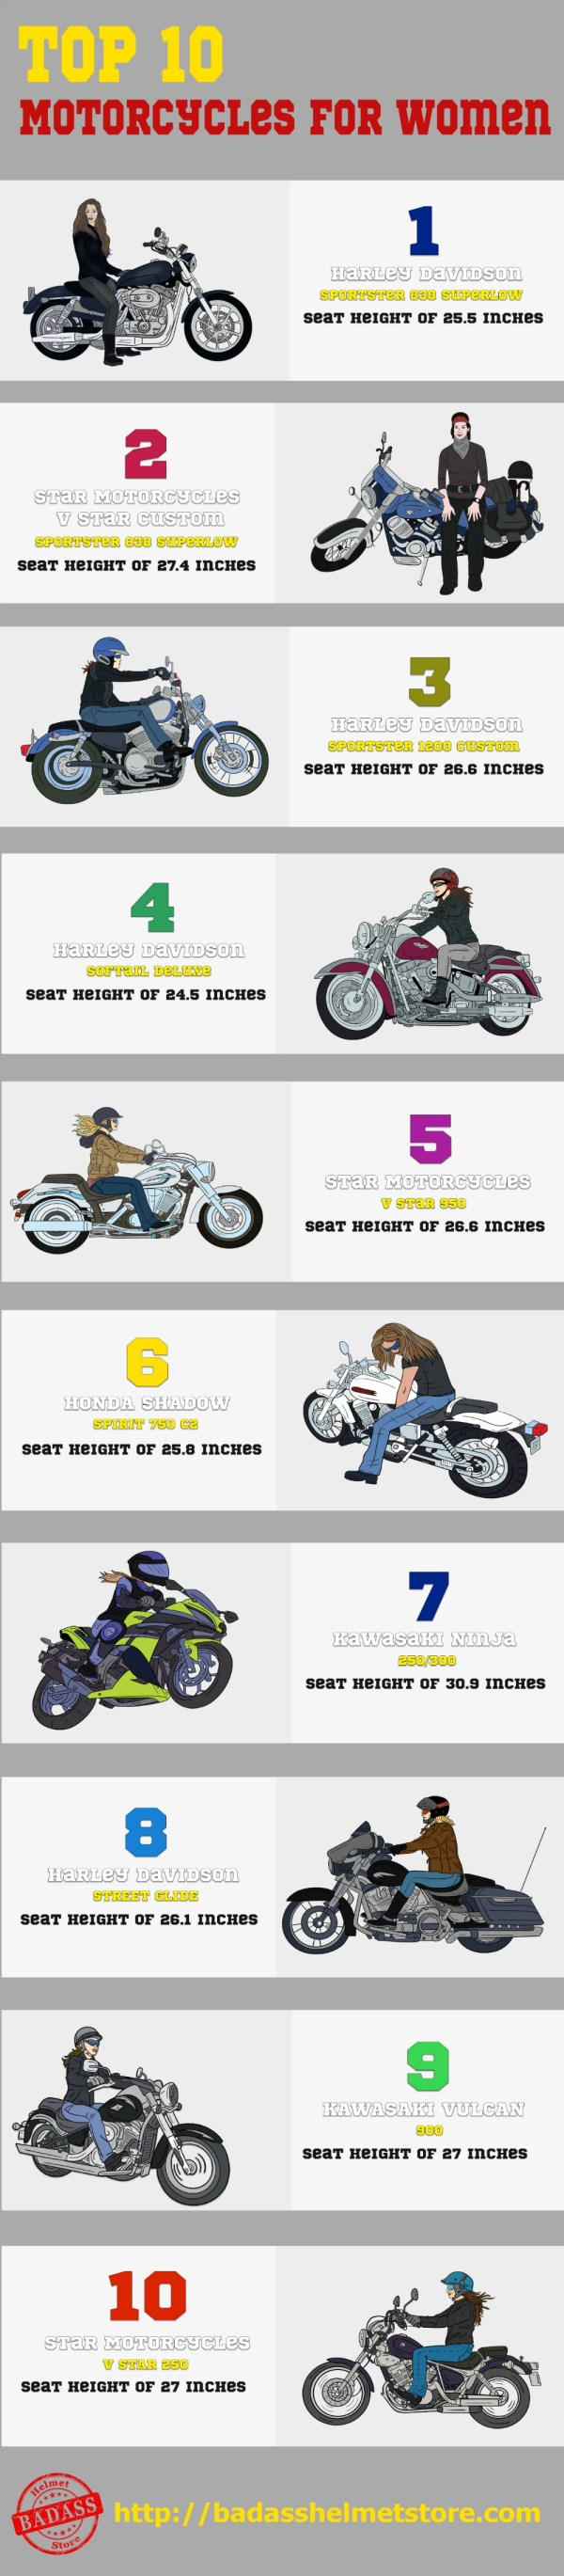 Top-10-Motorcycle-for-Women-by-the-Numbers